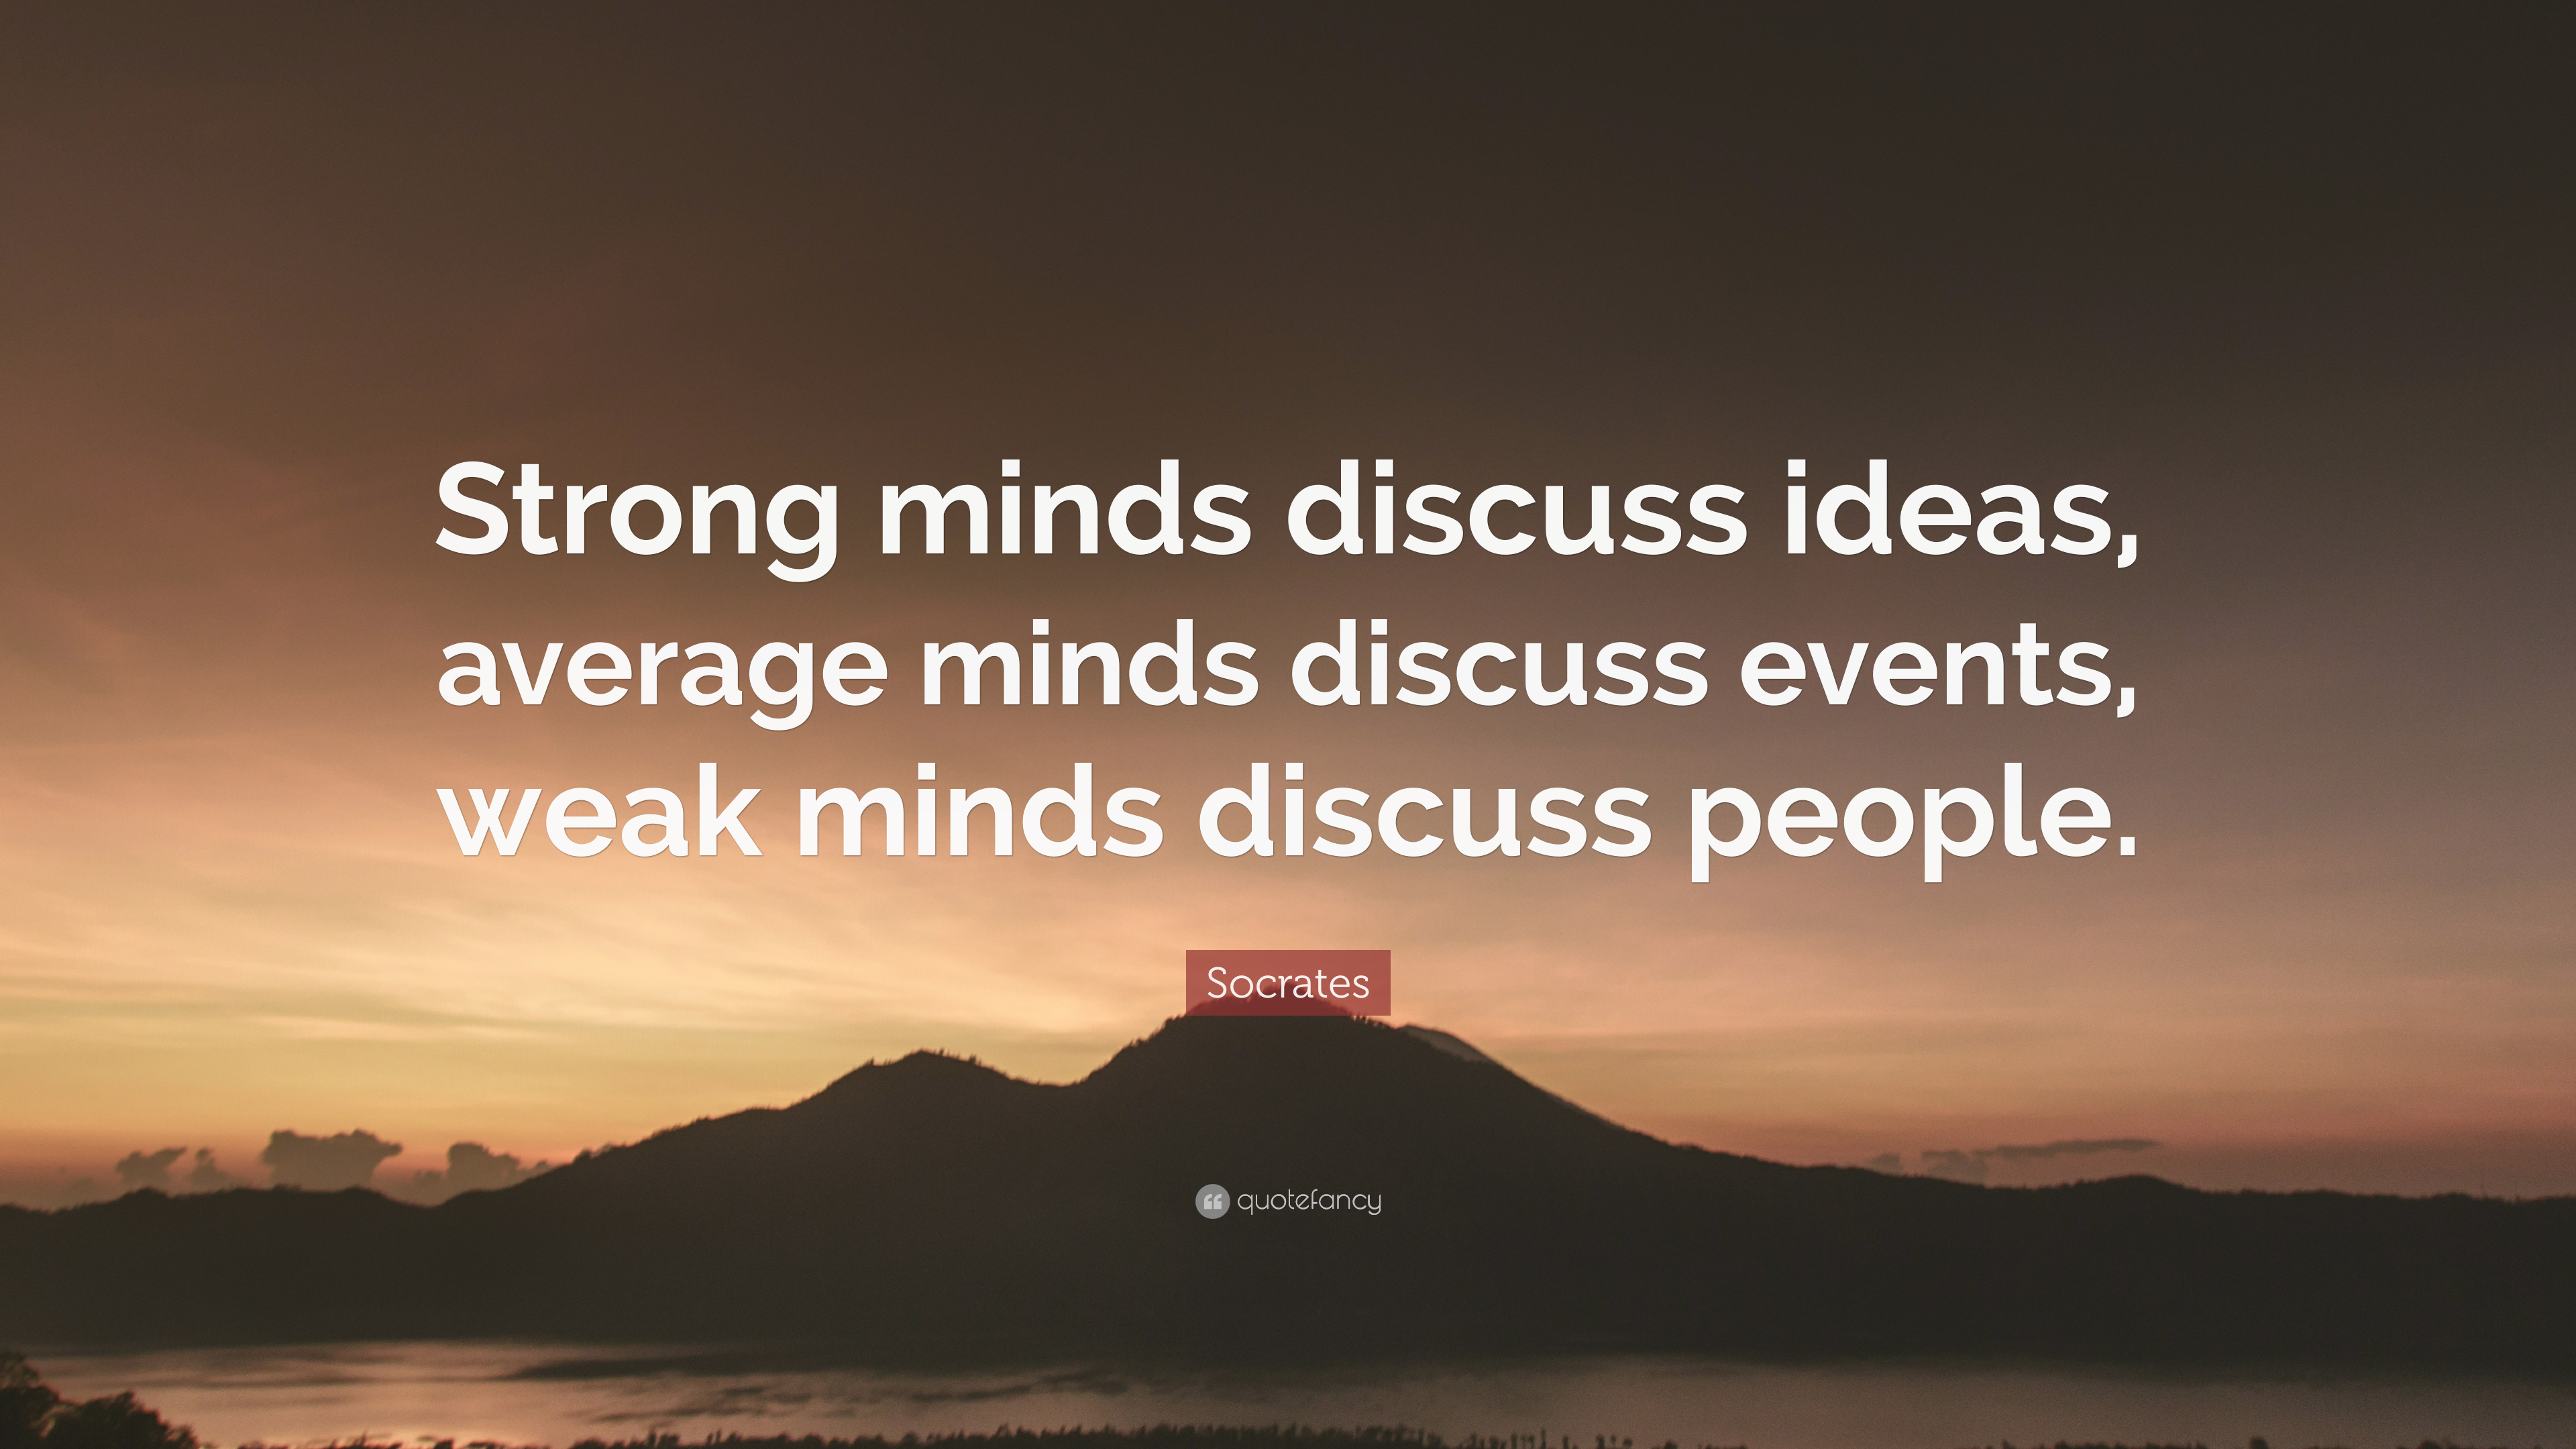 Shakespeare Wallpapers With Quotes Socrates Quote Strong Minds Discuss Ideas Average Minds